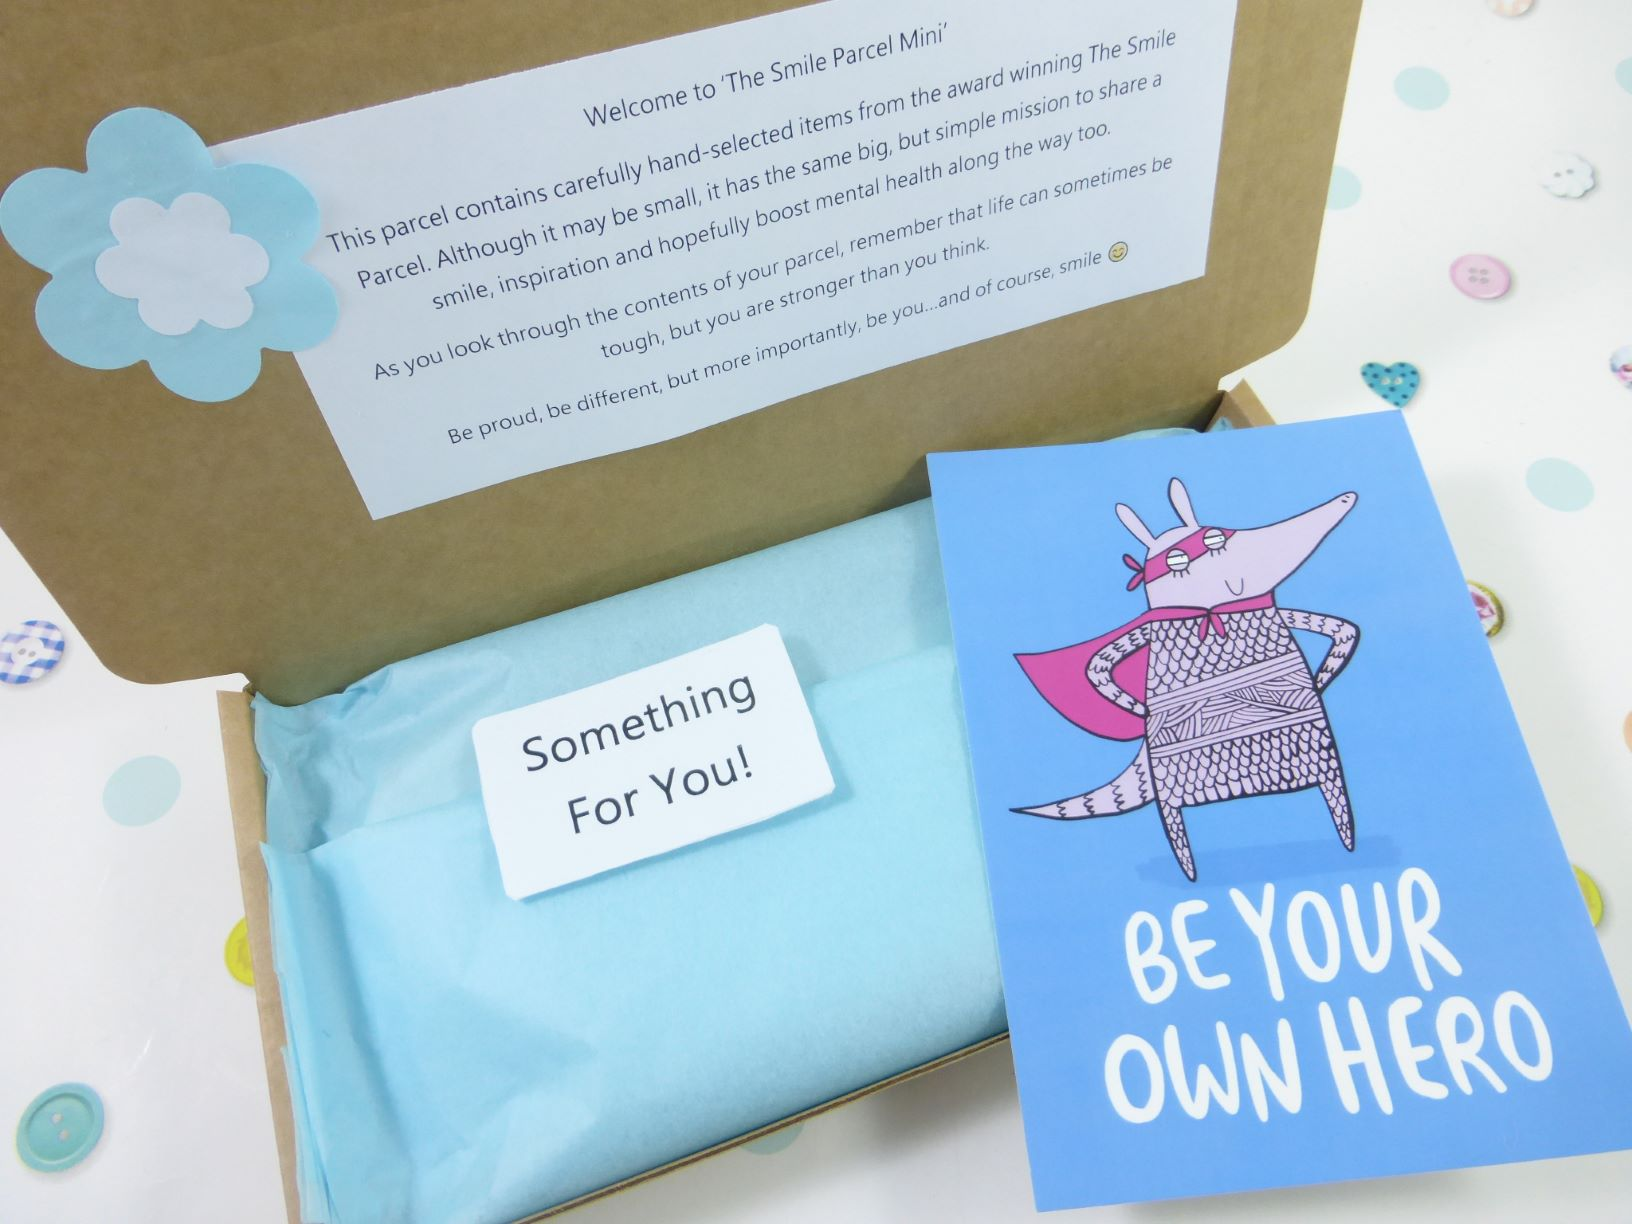 Blue Letterbox Friendly, Pick Me Up Gift, The Smile Parcel Mini, Self Care Box, Mental Health Gift, Happy Post, Wellbeing Gift Kind Shop 2